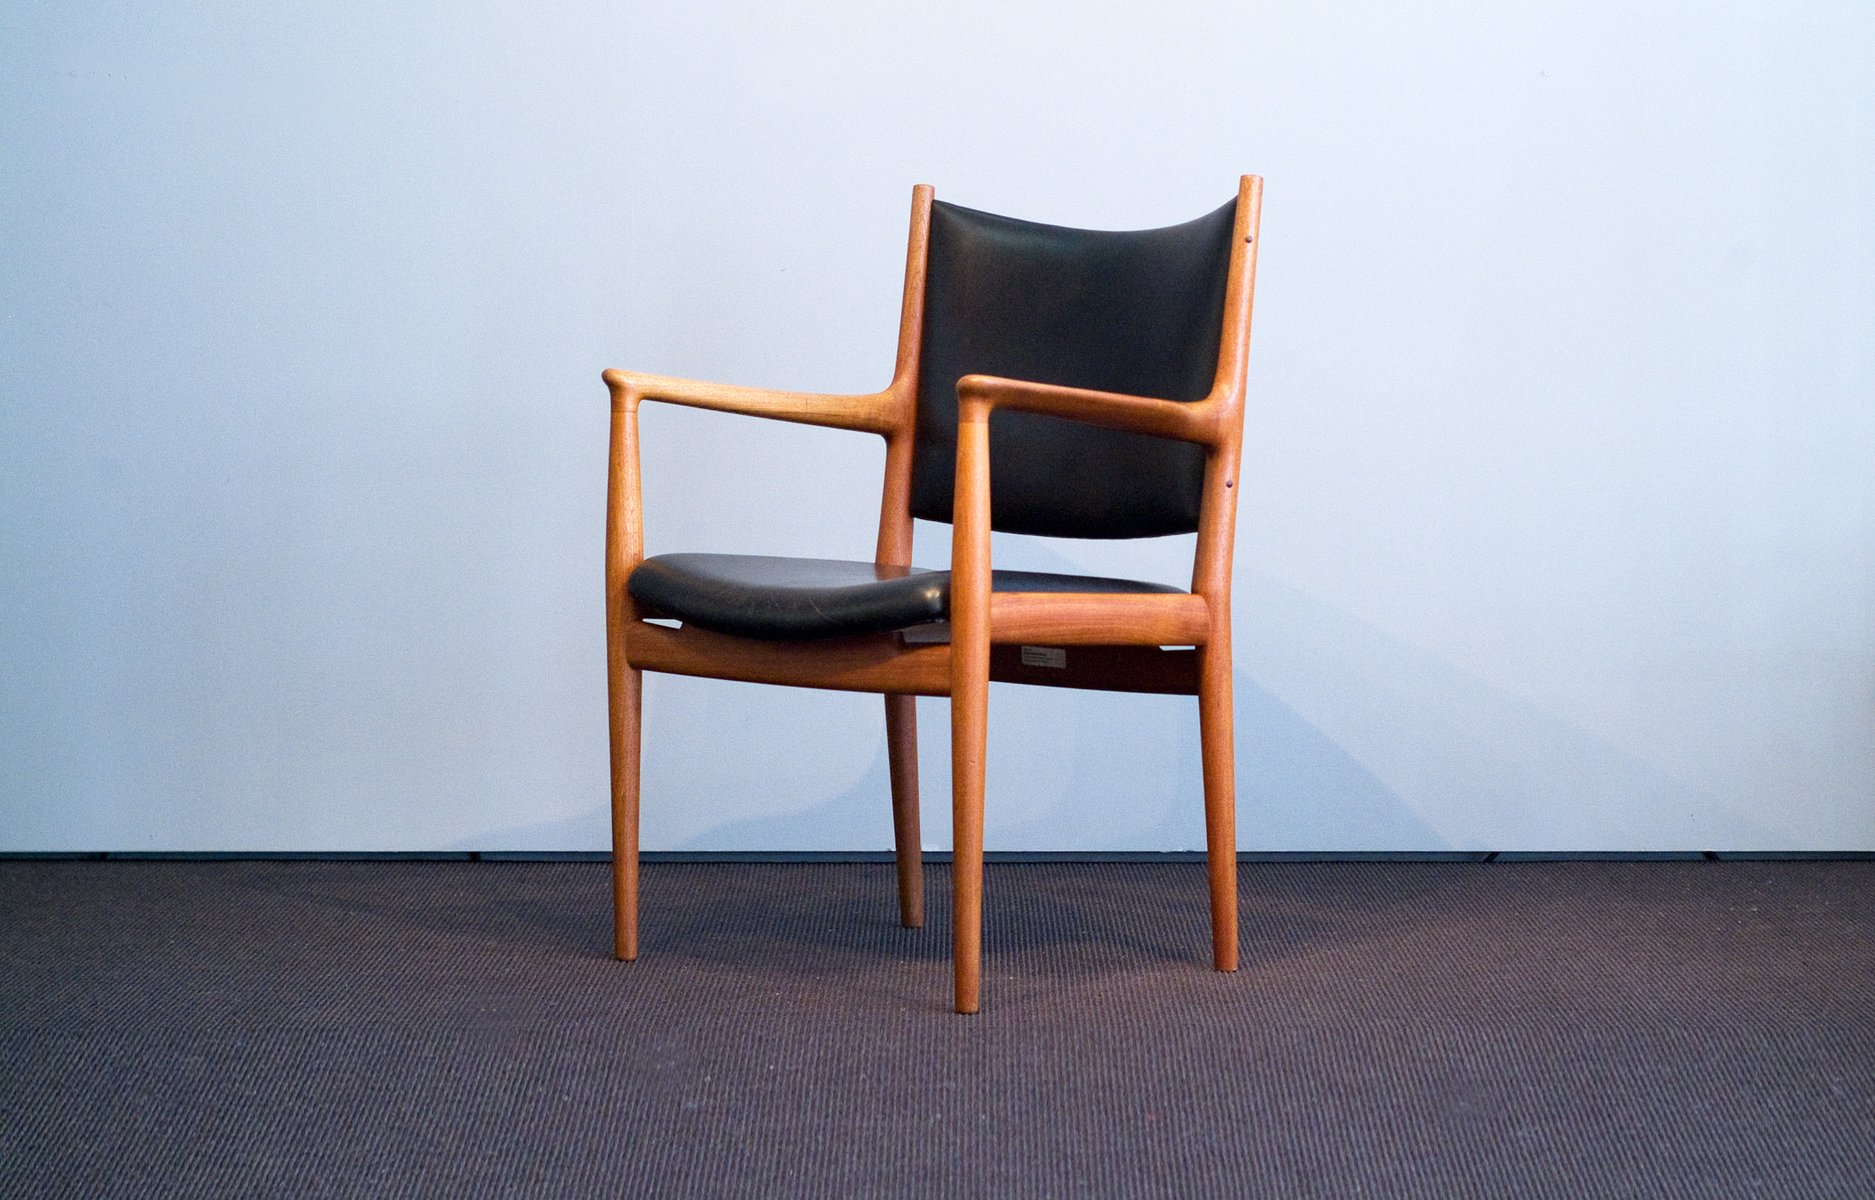 Vintage JH 513 Chair in Teak and Leather by Hans J Wegner for